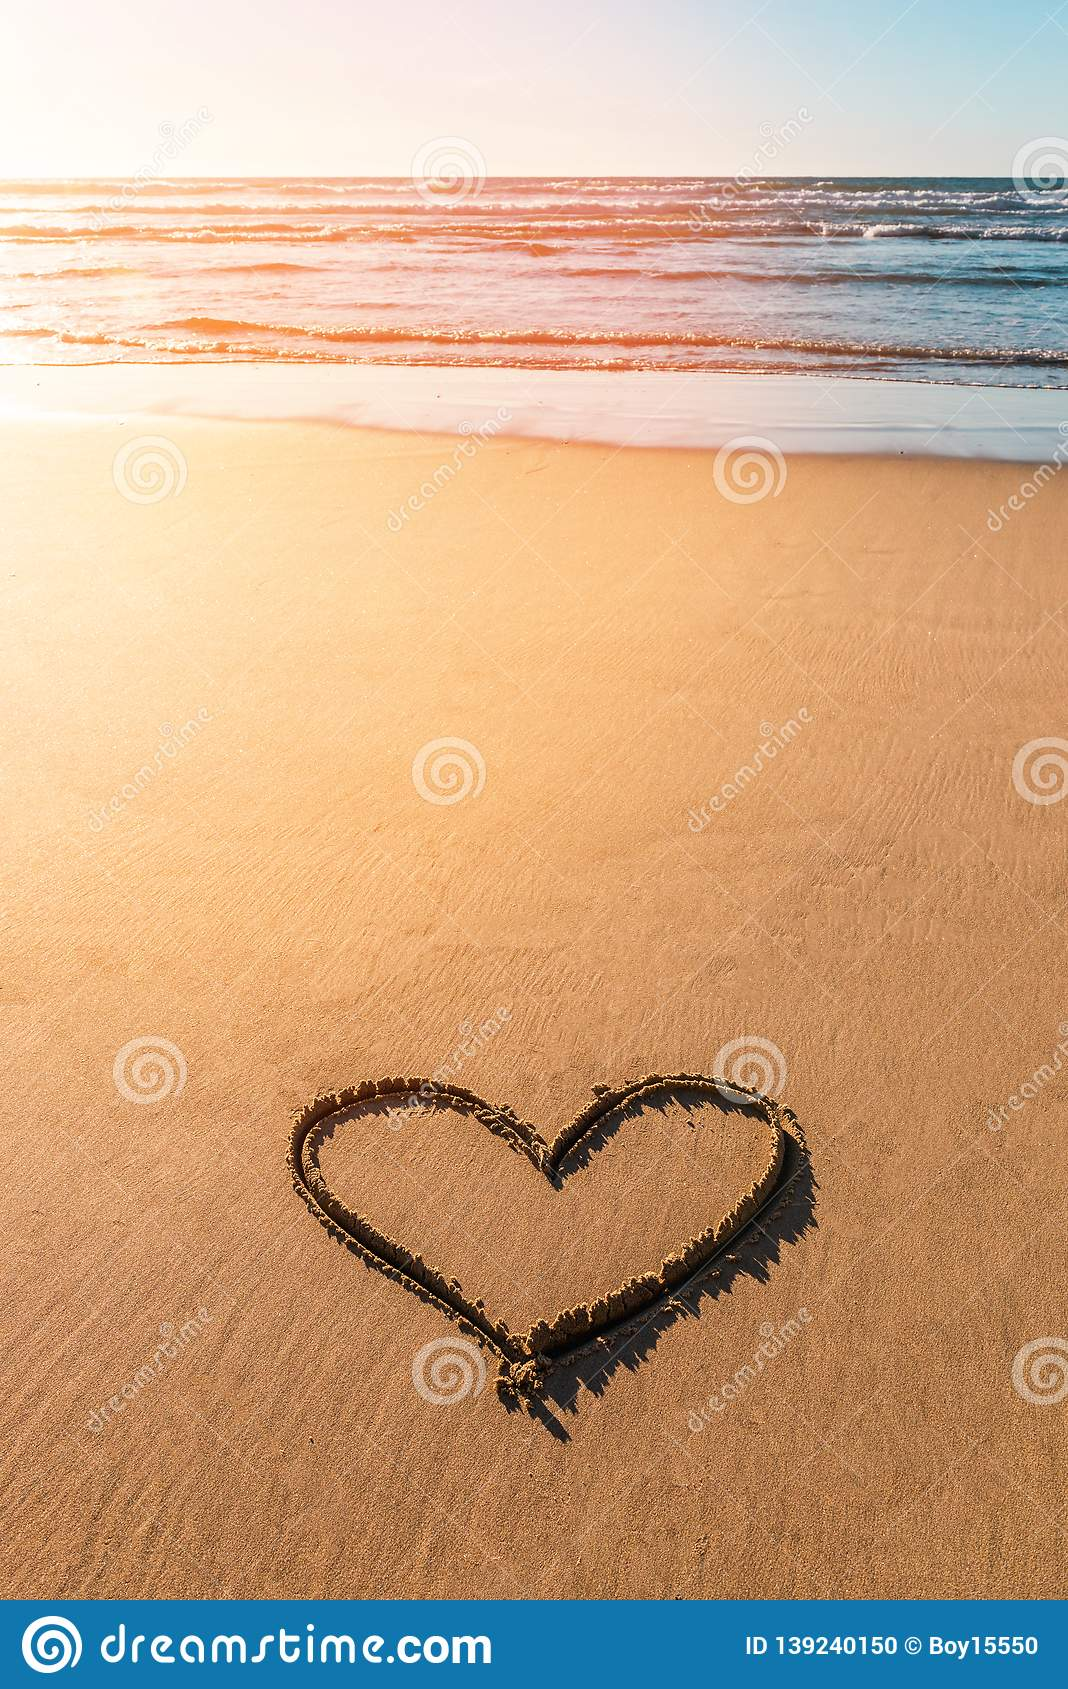 Heart drawn on sand near beautiful beach in valentines day